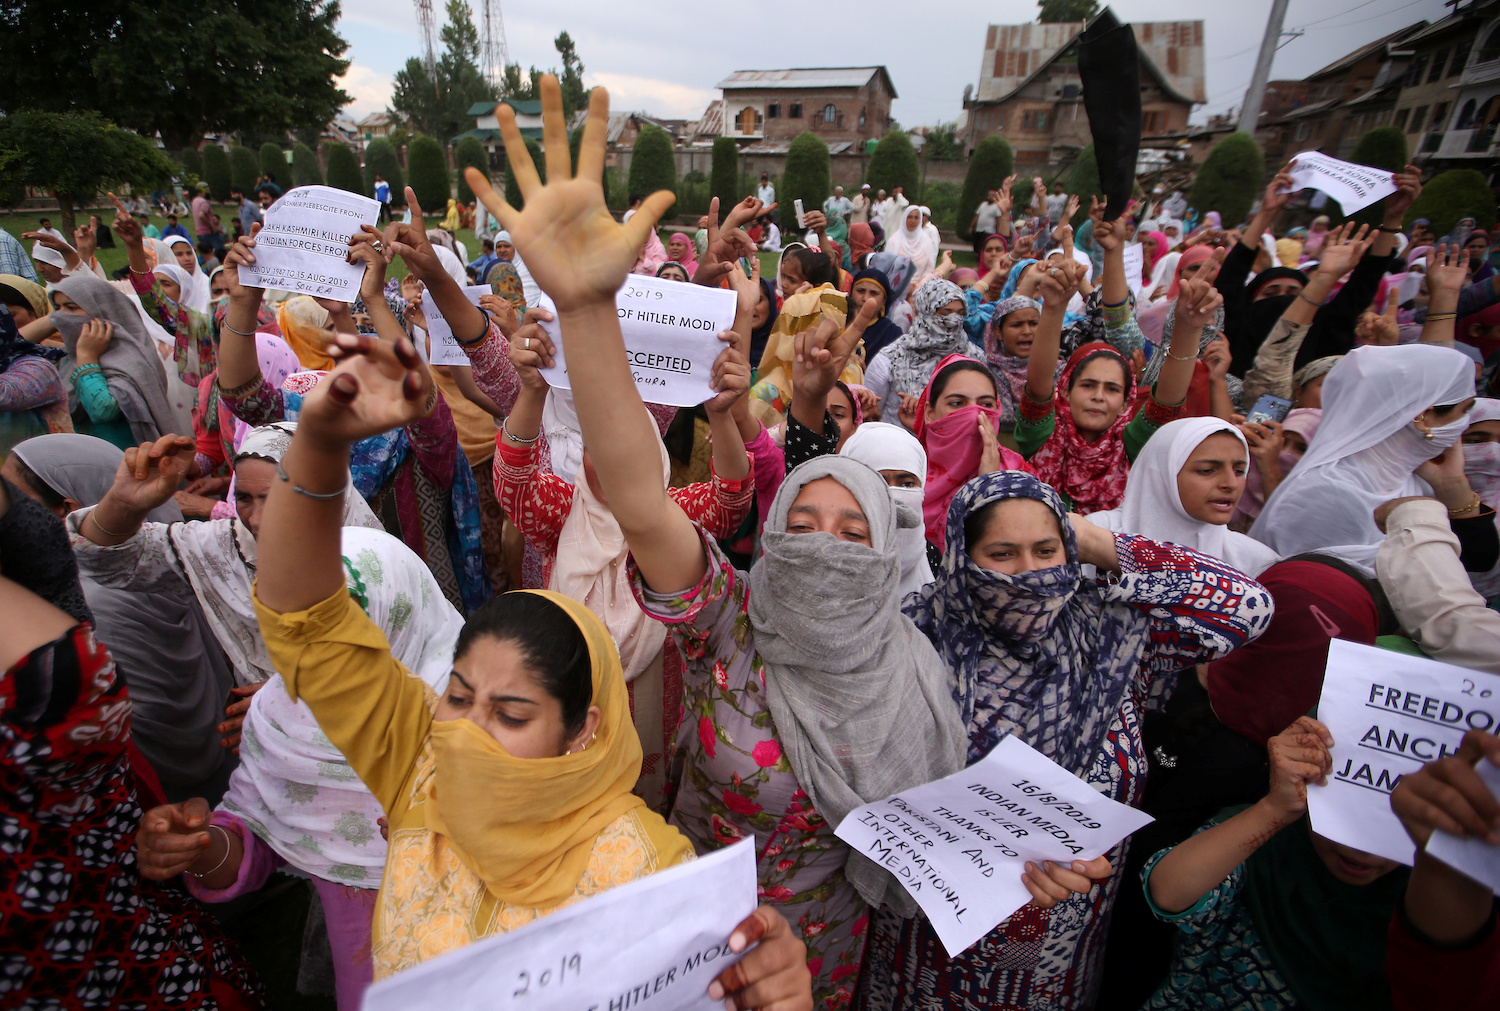 Kashmiri women shout slogans at a protest after Friday prayers in Srinagar about the restrictions imposed on the area by the Indian government. (Reuters Photo)